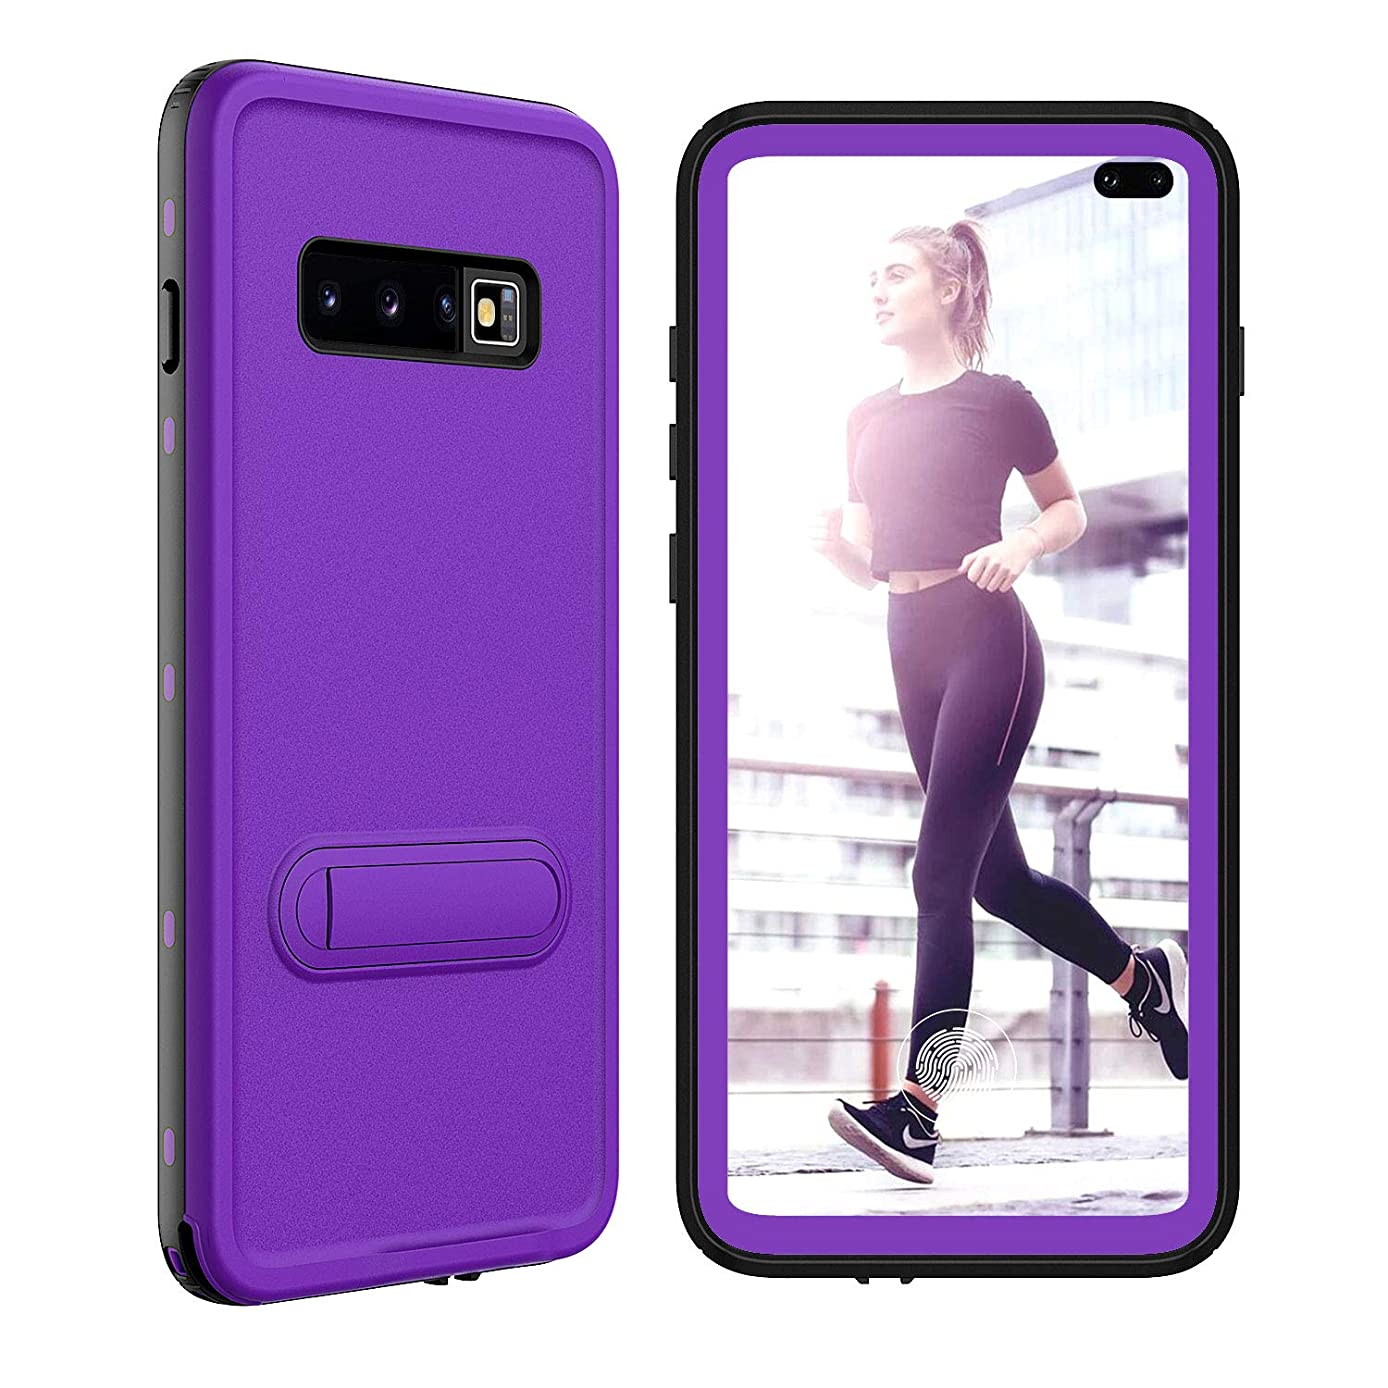 Protective Samsung Galaxy S10+ Plus Case with Built in Screen Protector, Underwater Full Body Protection Heavy Duty Rugged Case Waterproof Shockproof Case for Samsung Galaxy S10+ Plus Purple 6.4 inch